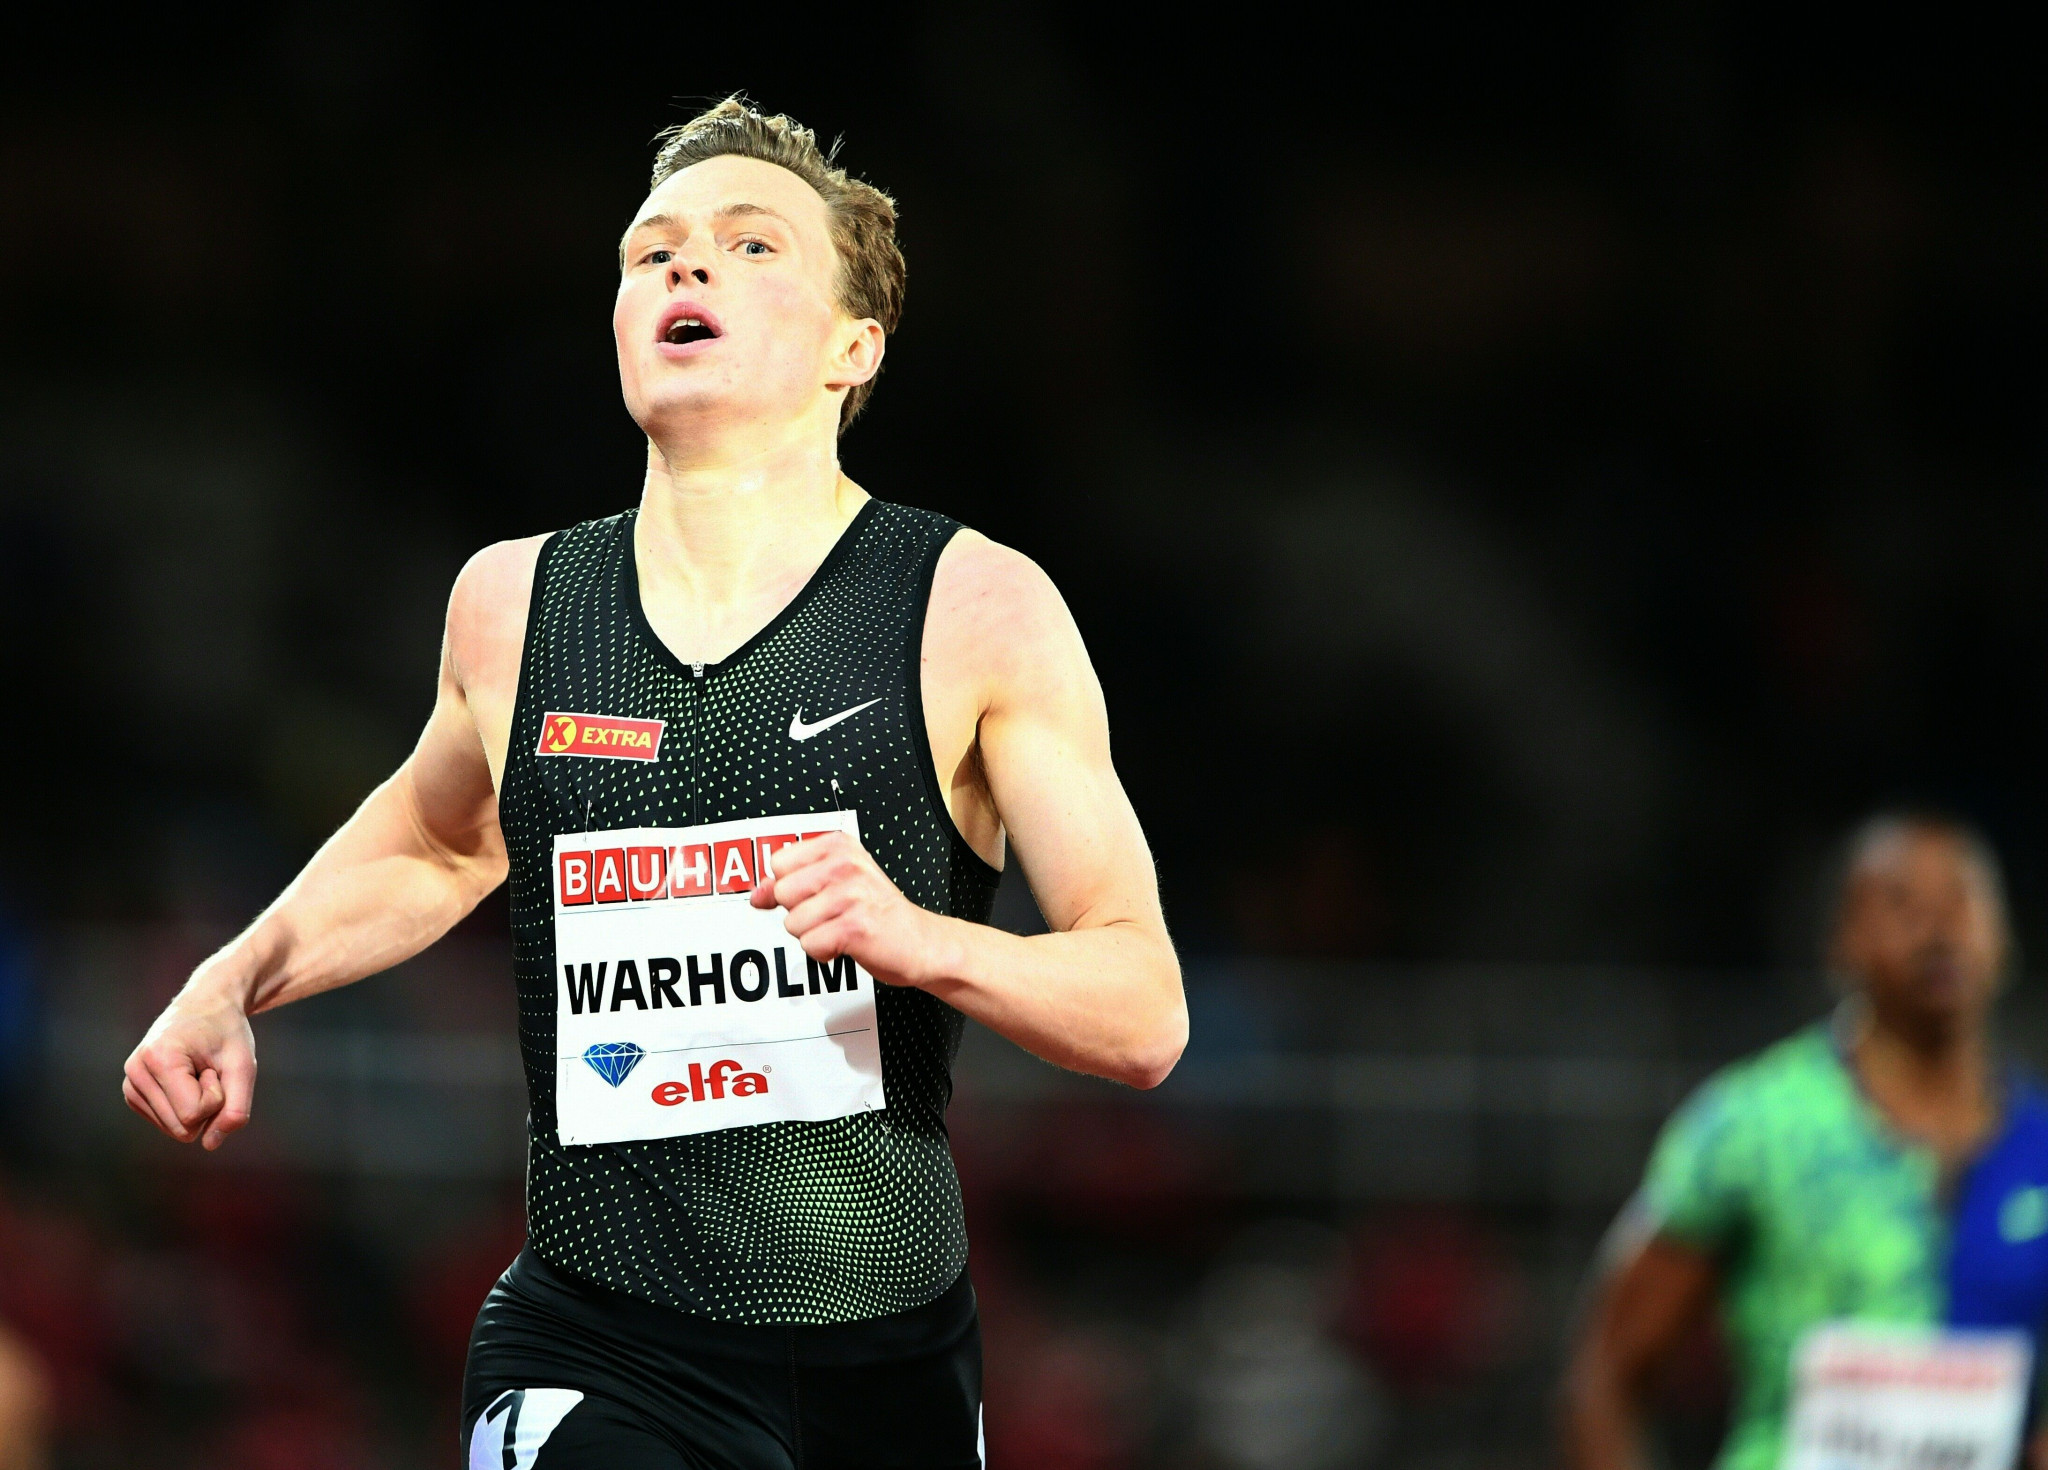 Home hopes Warholm and Ingebrigtsen brothers ready to apply heat to IAAF Diamond League meeting in Oslo